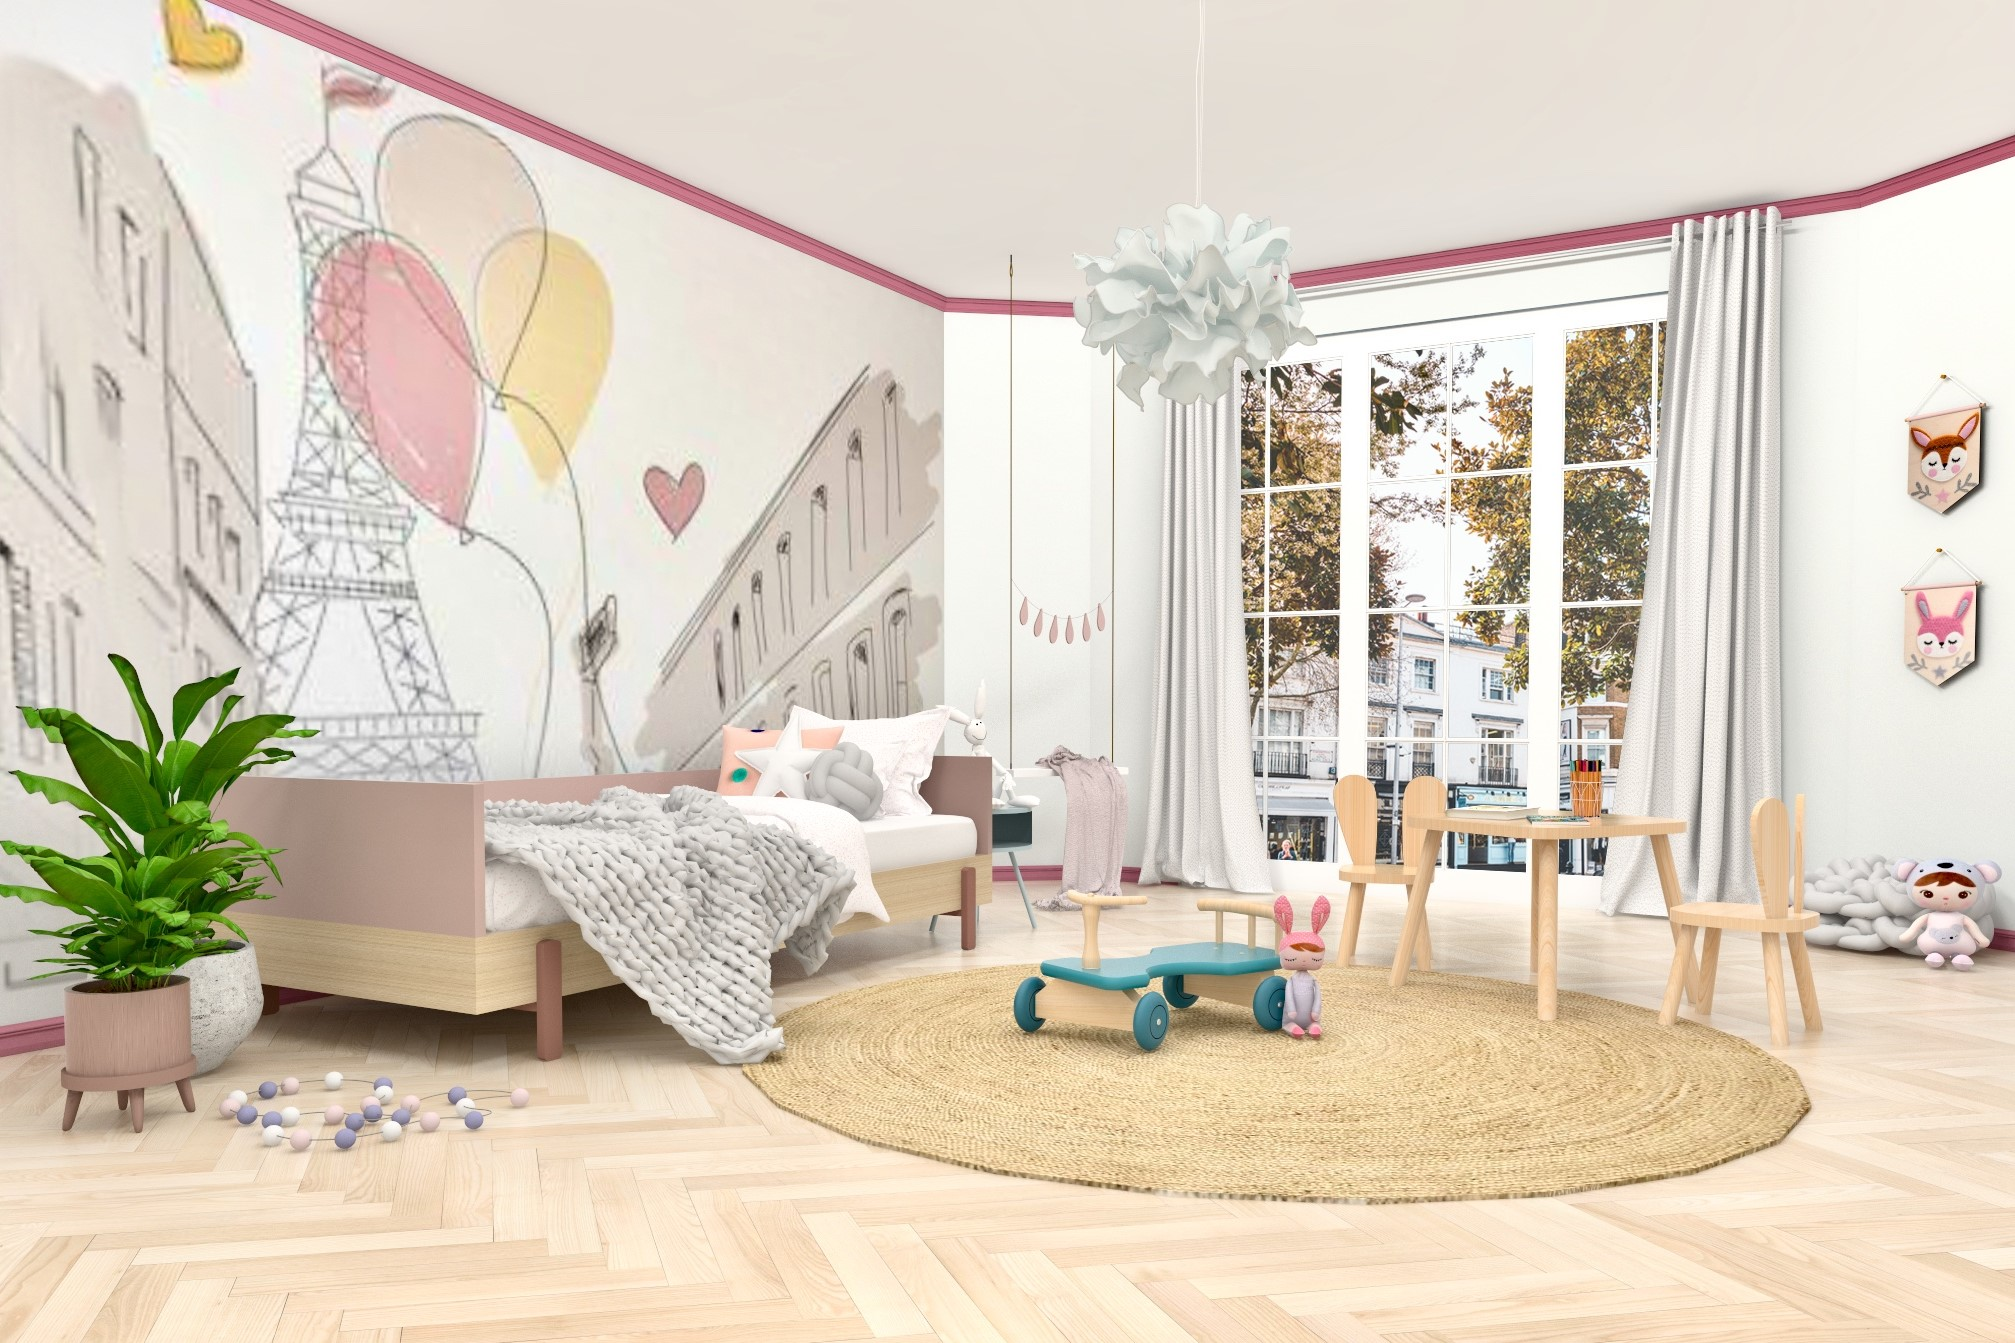 Whimsical Girl's Bedroom Design by Eklektik Studio